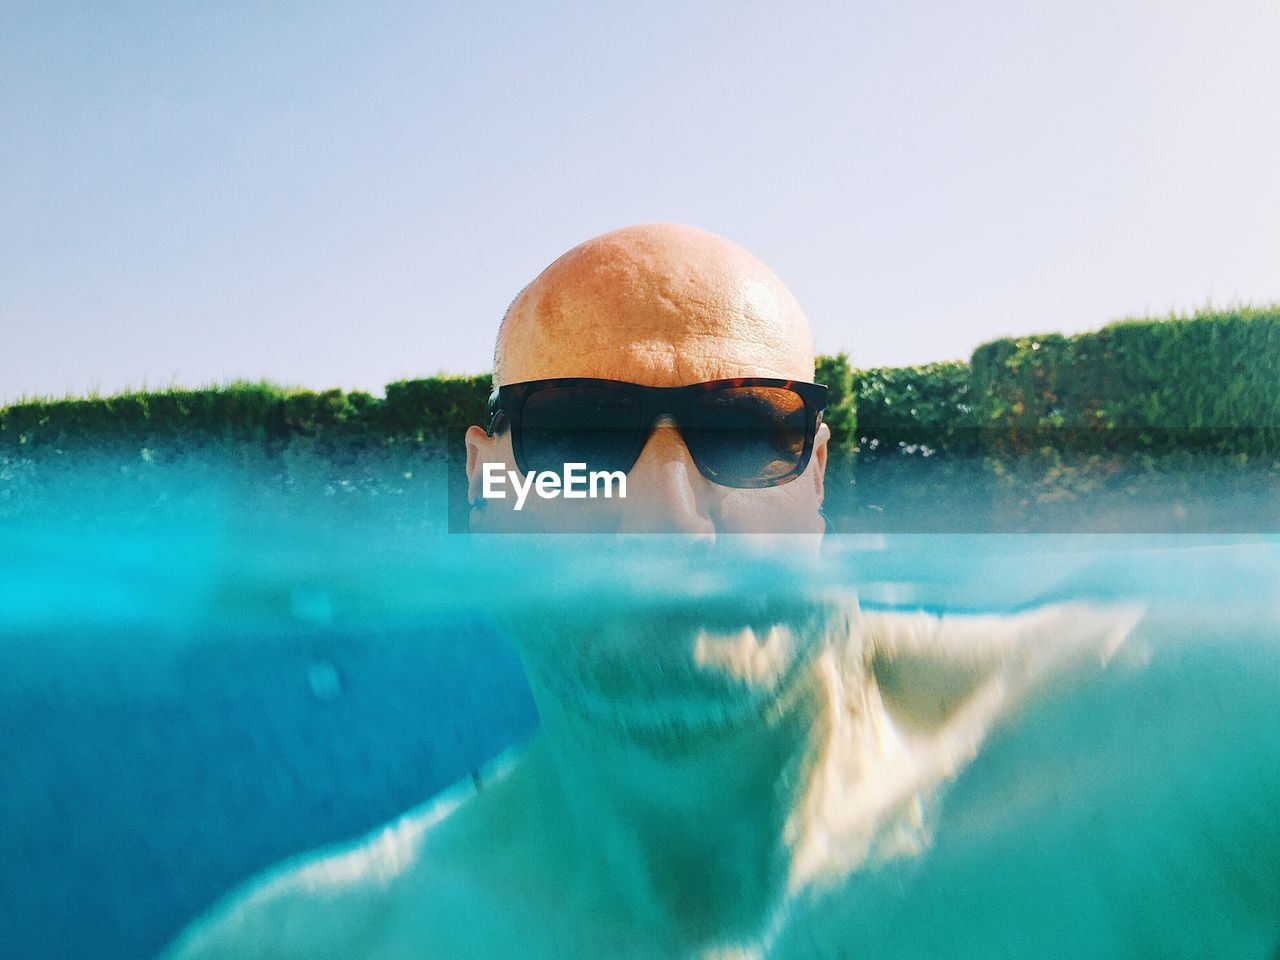 Portrait Of Bald Man Wearing Sunglasses While Swimming In Pool Against Clear Sky